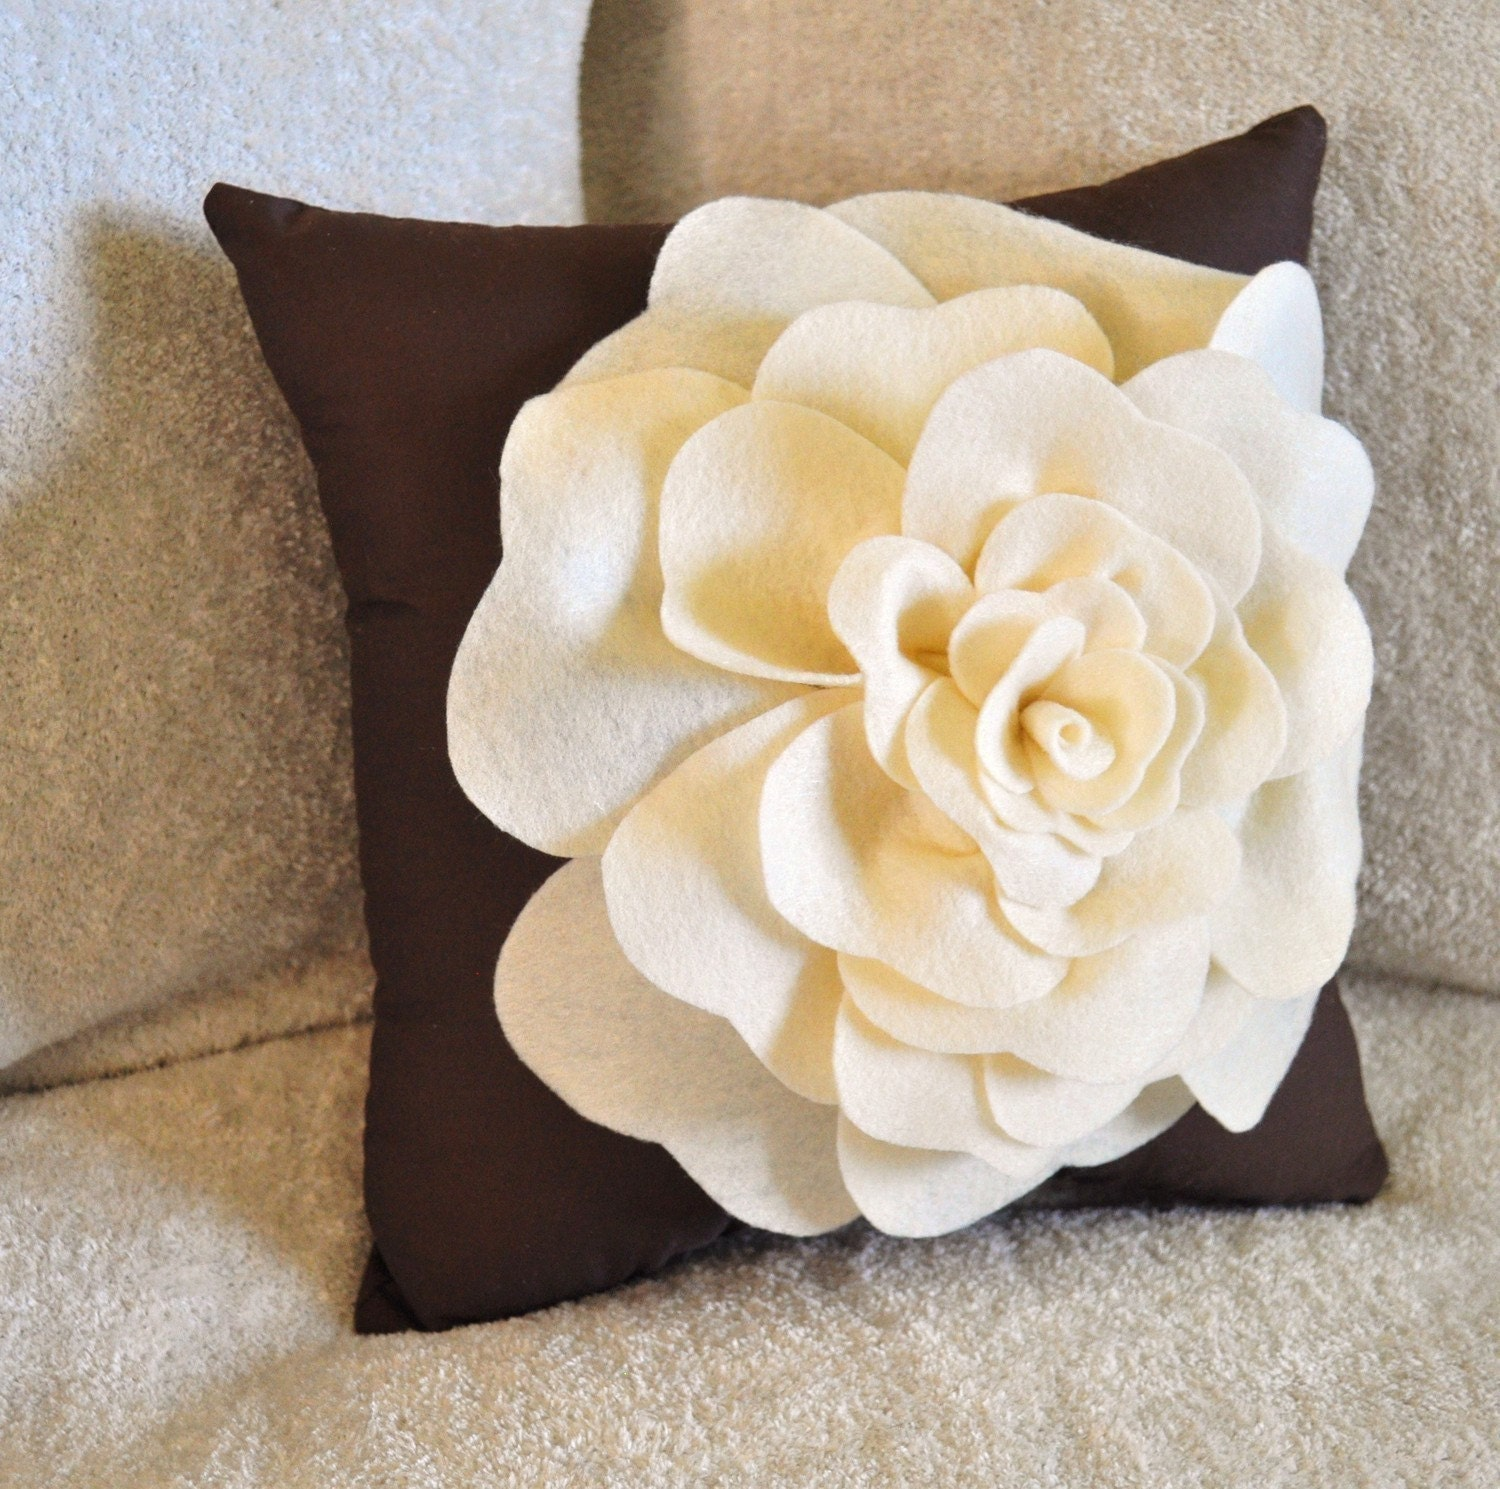 Antique White Rose on Brown Pillow